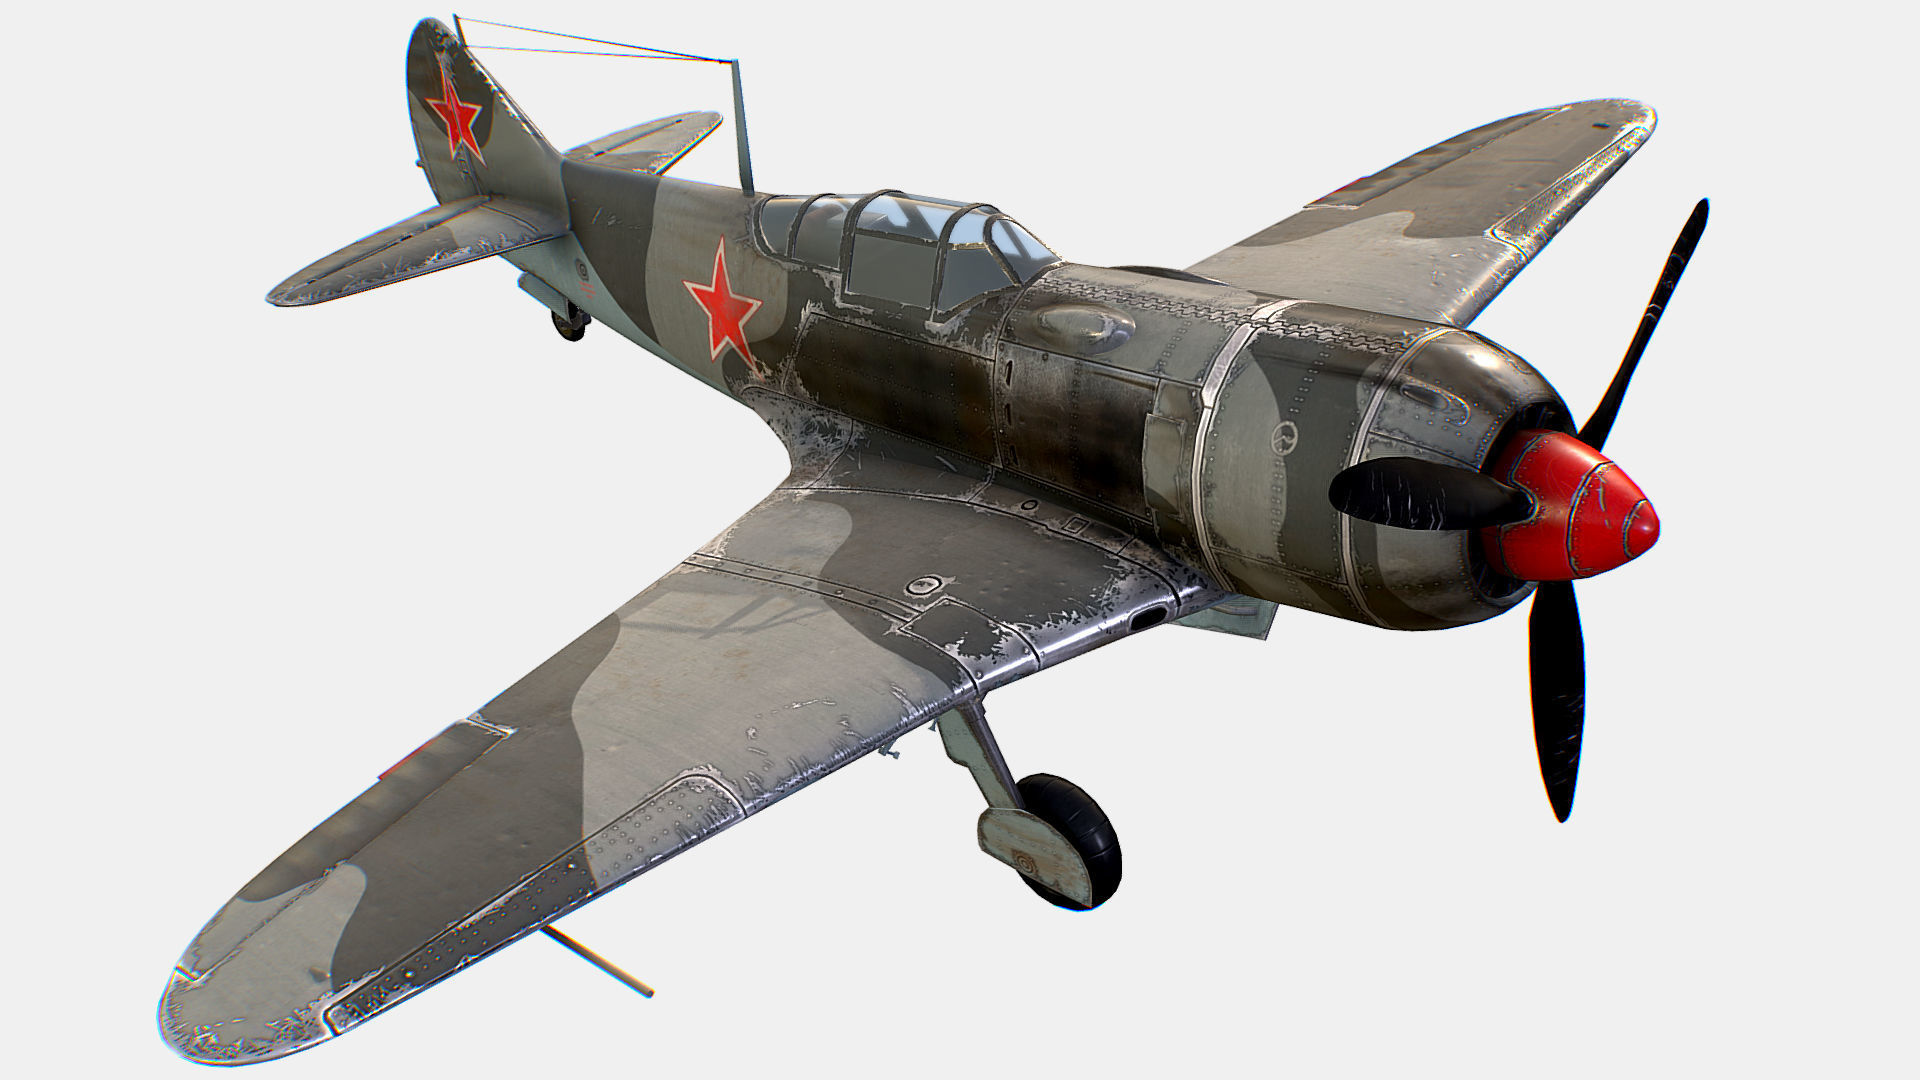 Russian Soviet fighter aircraft Lavochkin La-7